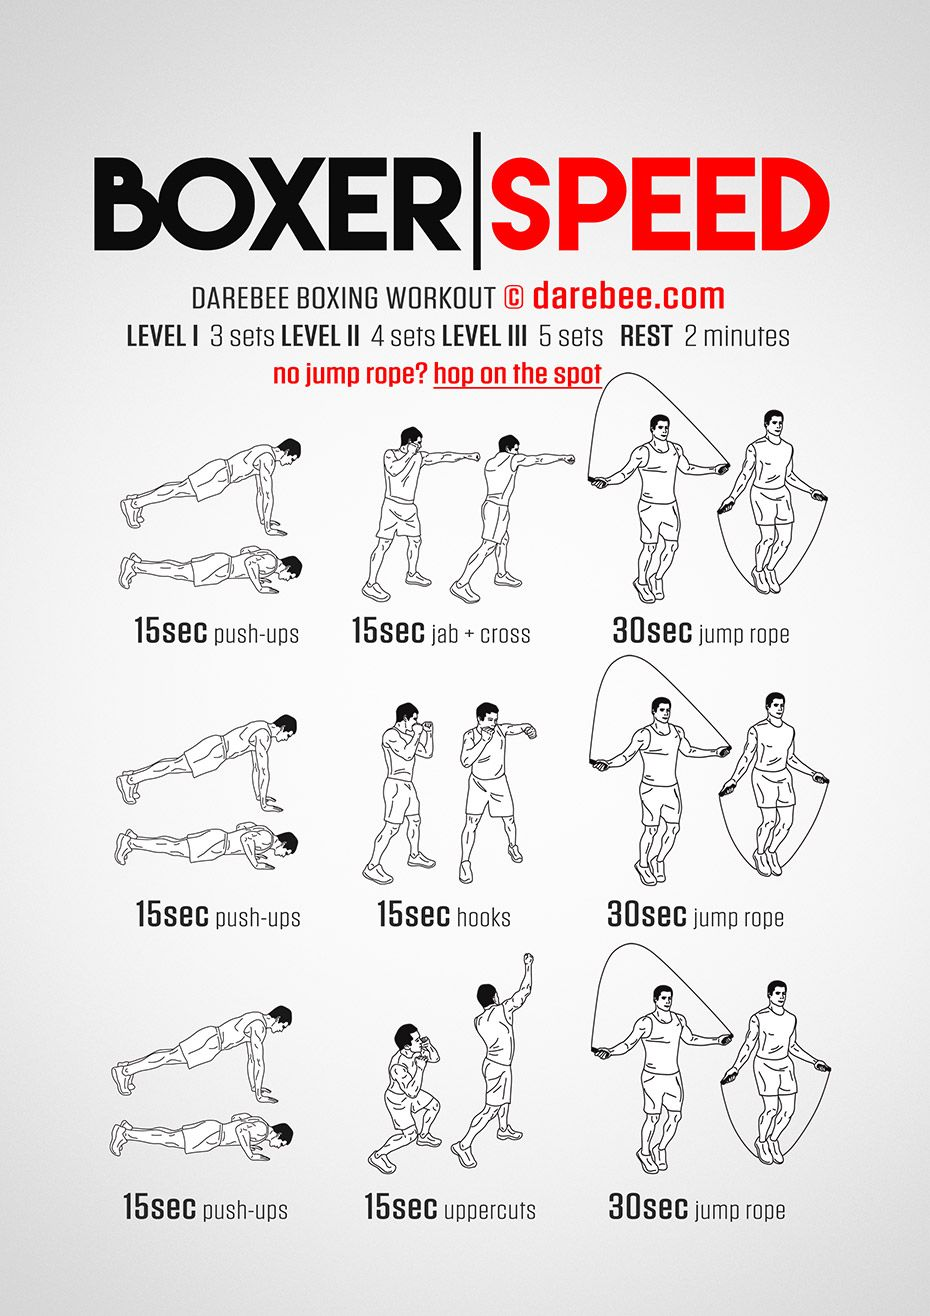 Boxer Speed Workout | Workouts | Pinterest | Workout, MMA and Exercises